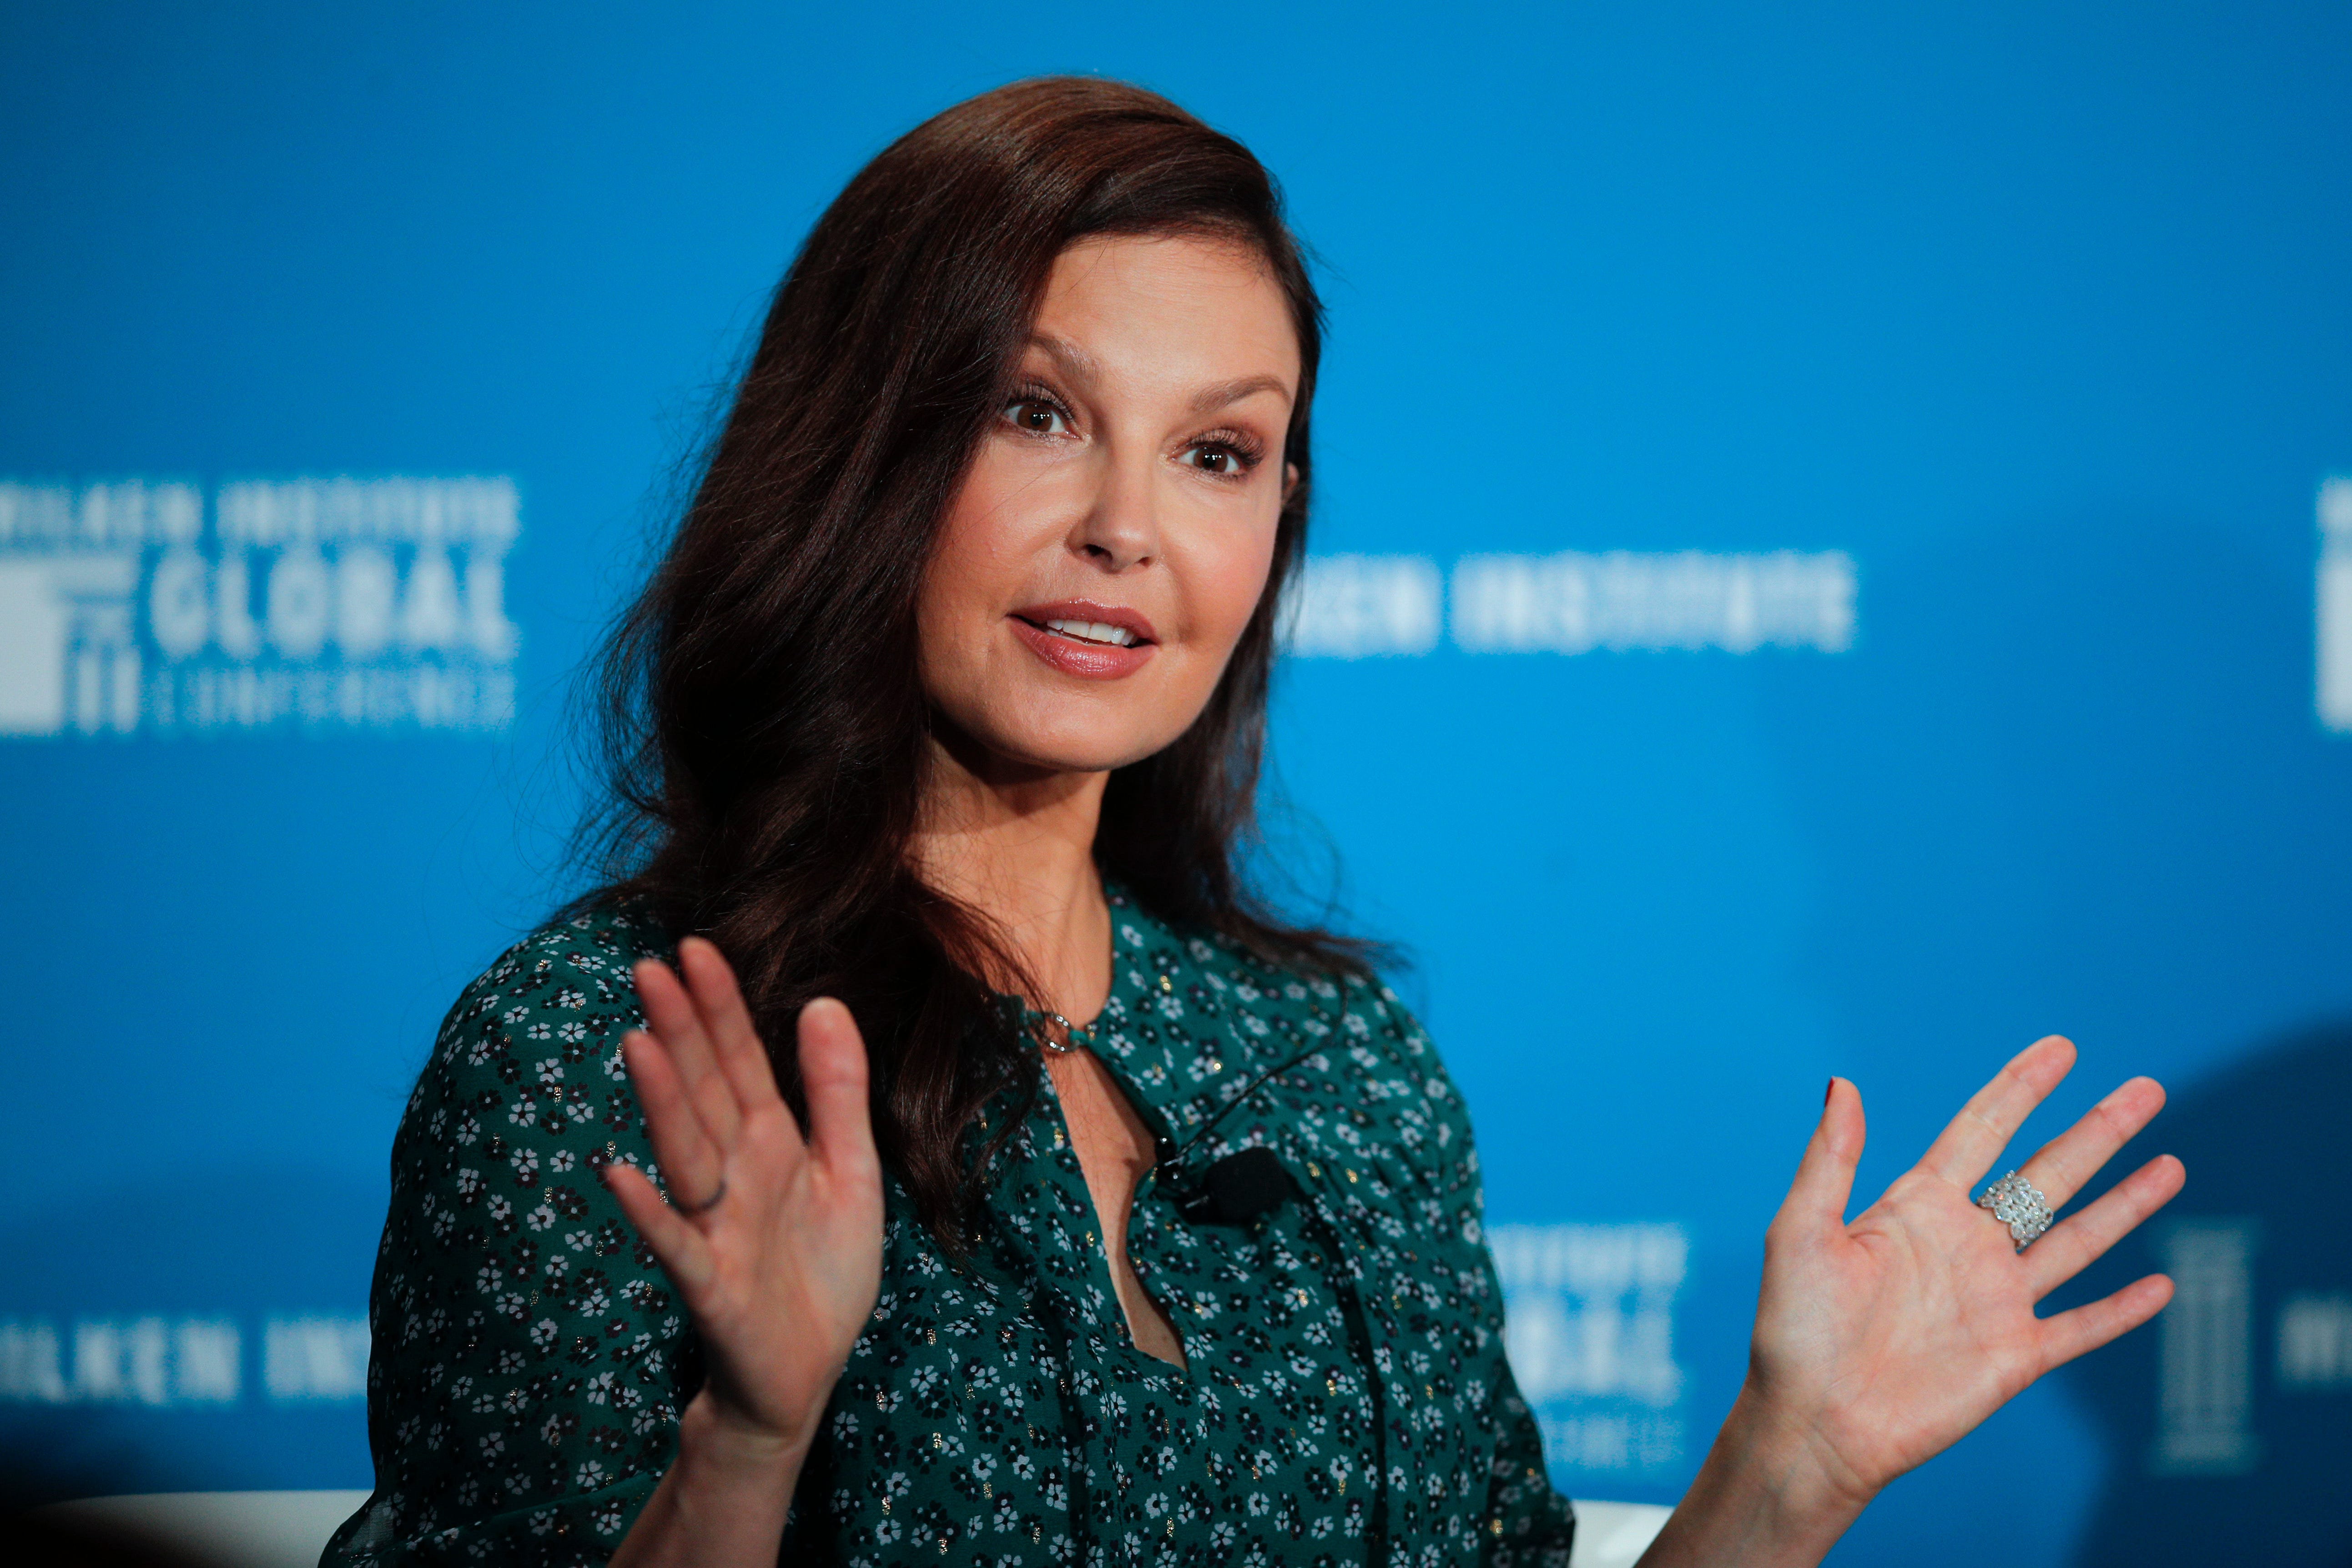 Ashley Judd recovering in ICU after shattering leg in African rainforest in harrowing accident